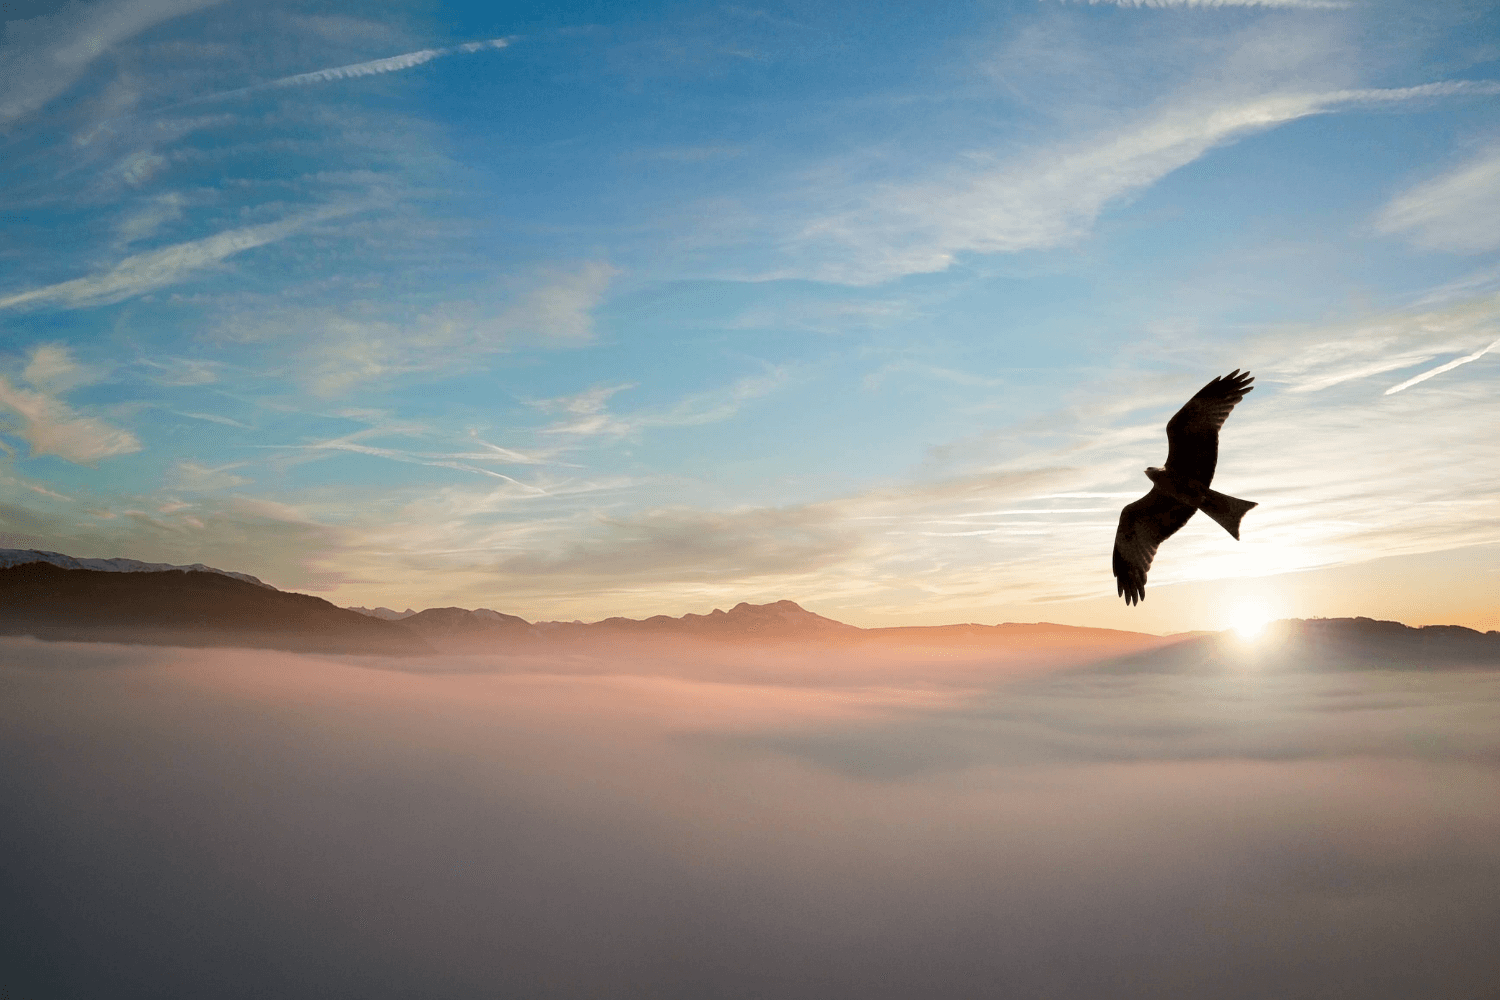 Bird flying above the clouds with sun in background